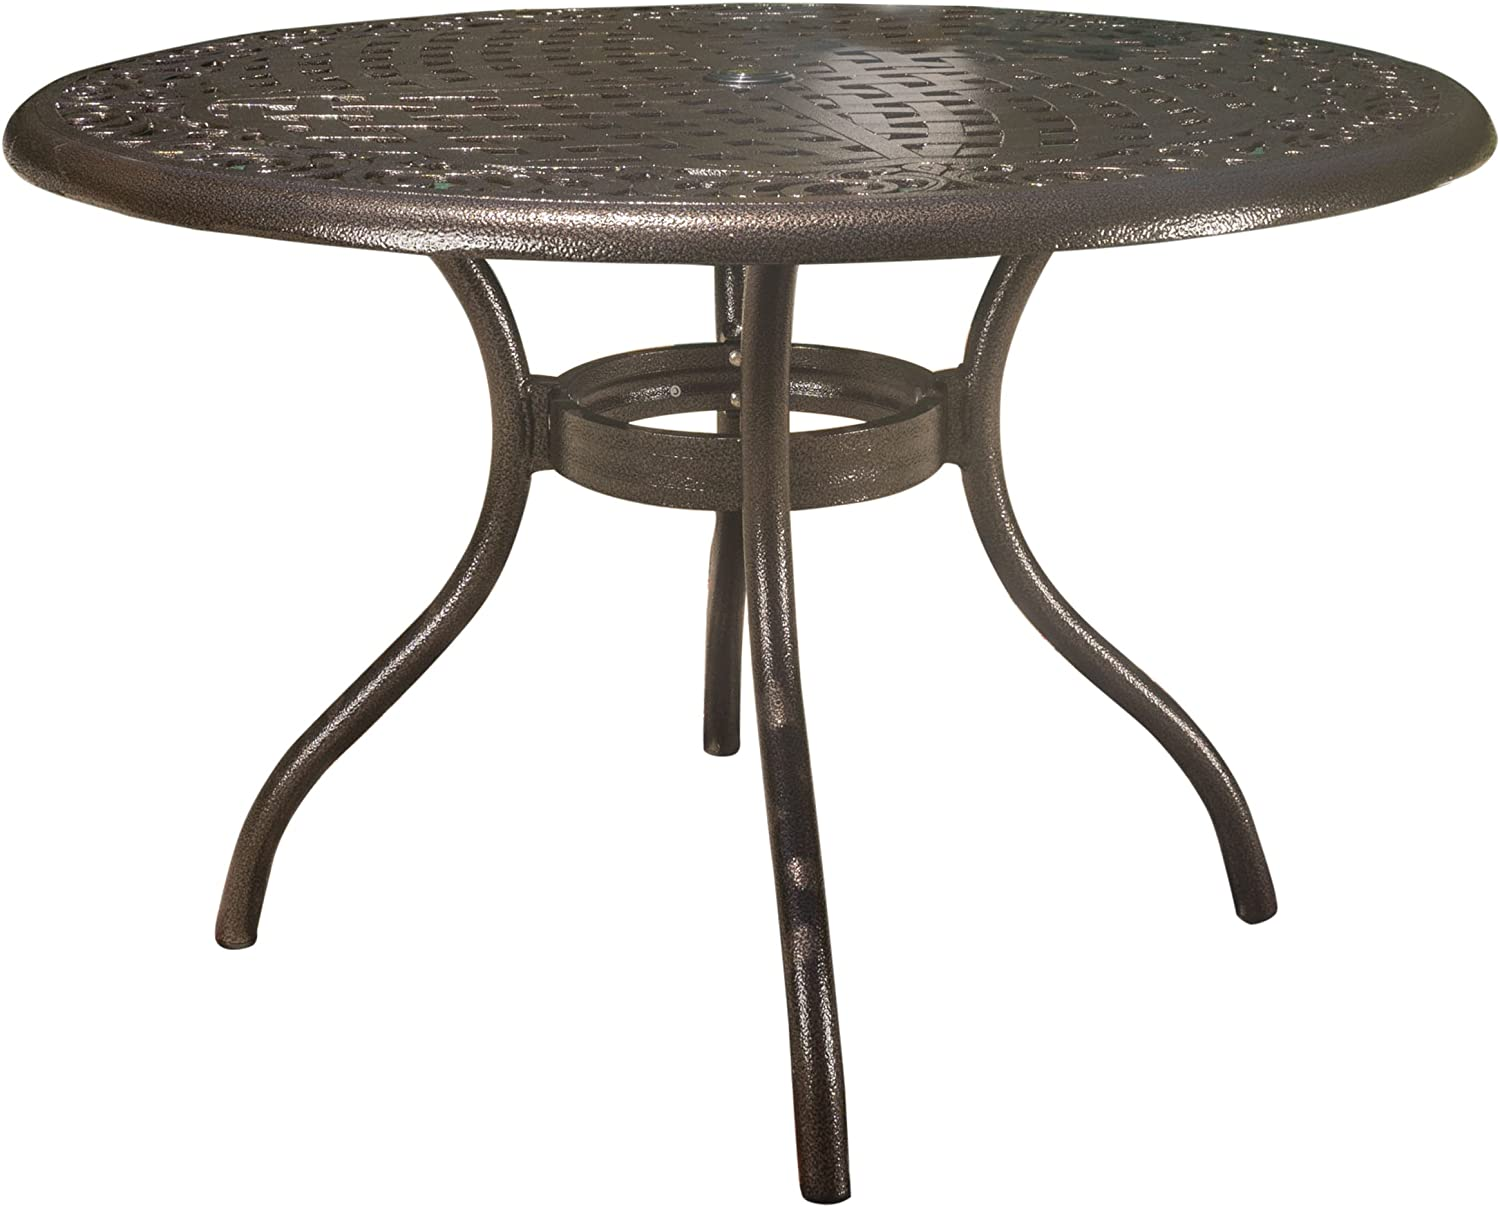 Amazon.com : Christopher Knight Home Phoenix Cast Aluminum Round Table, Hammered Bronze : Garden & Outdoor